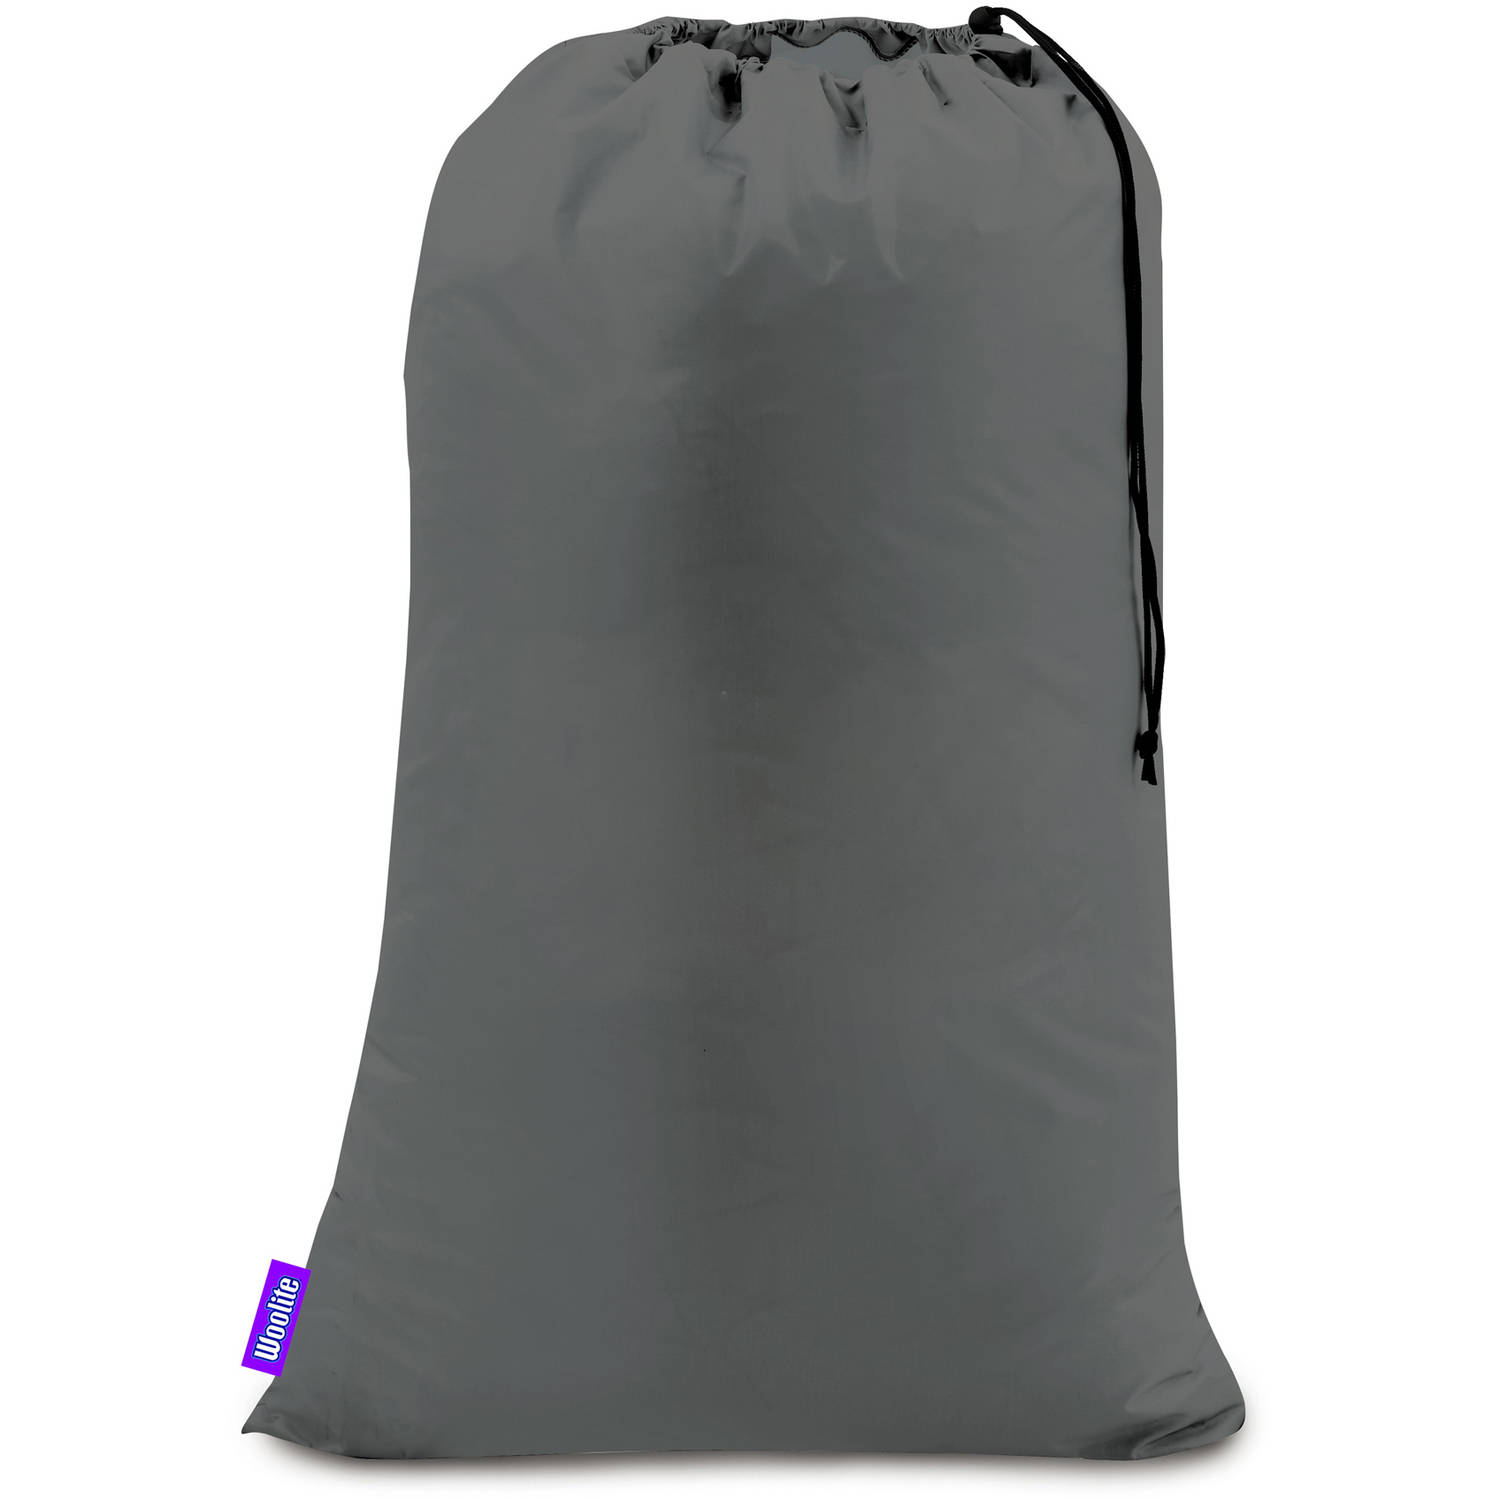 Woolite Sanitized Laundry Bag